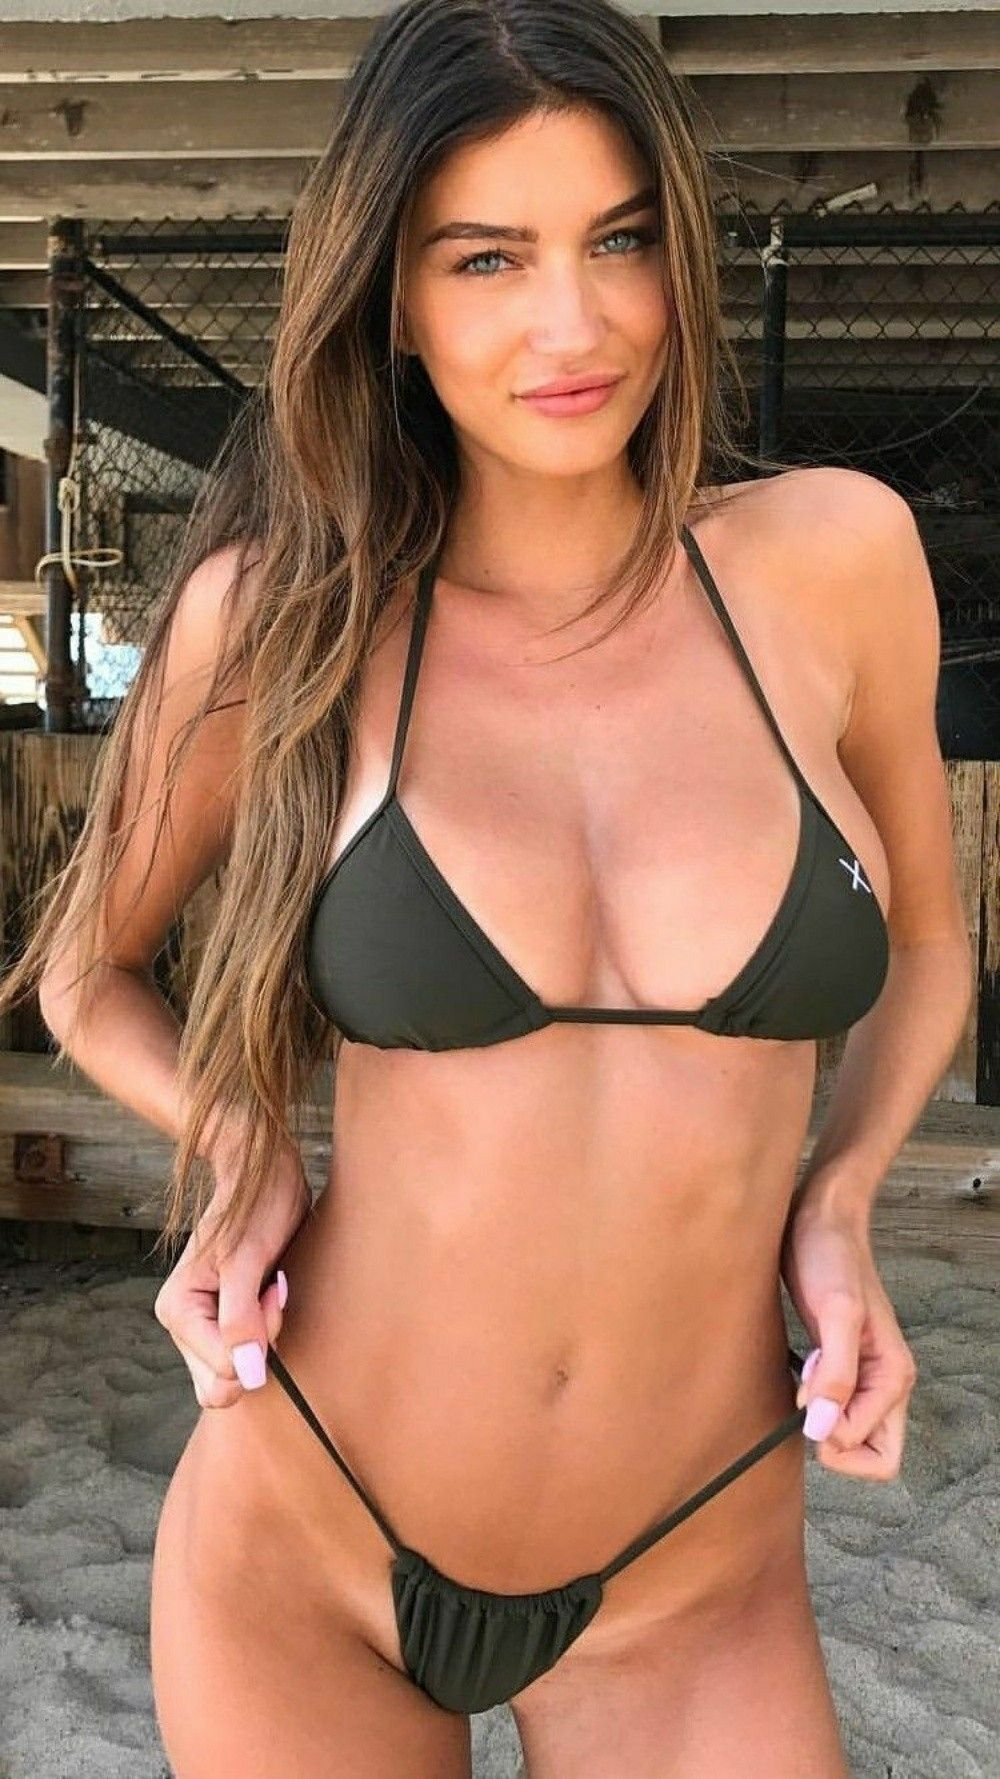 Young face porn model